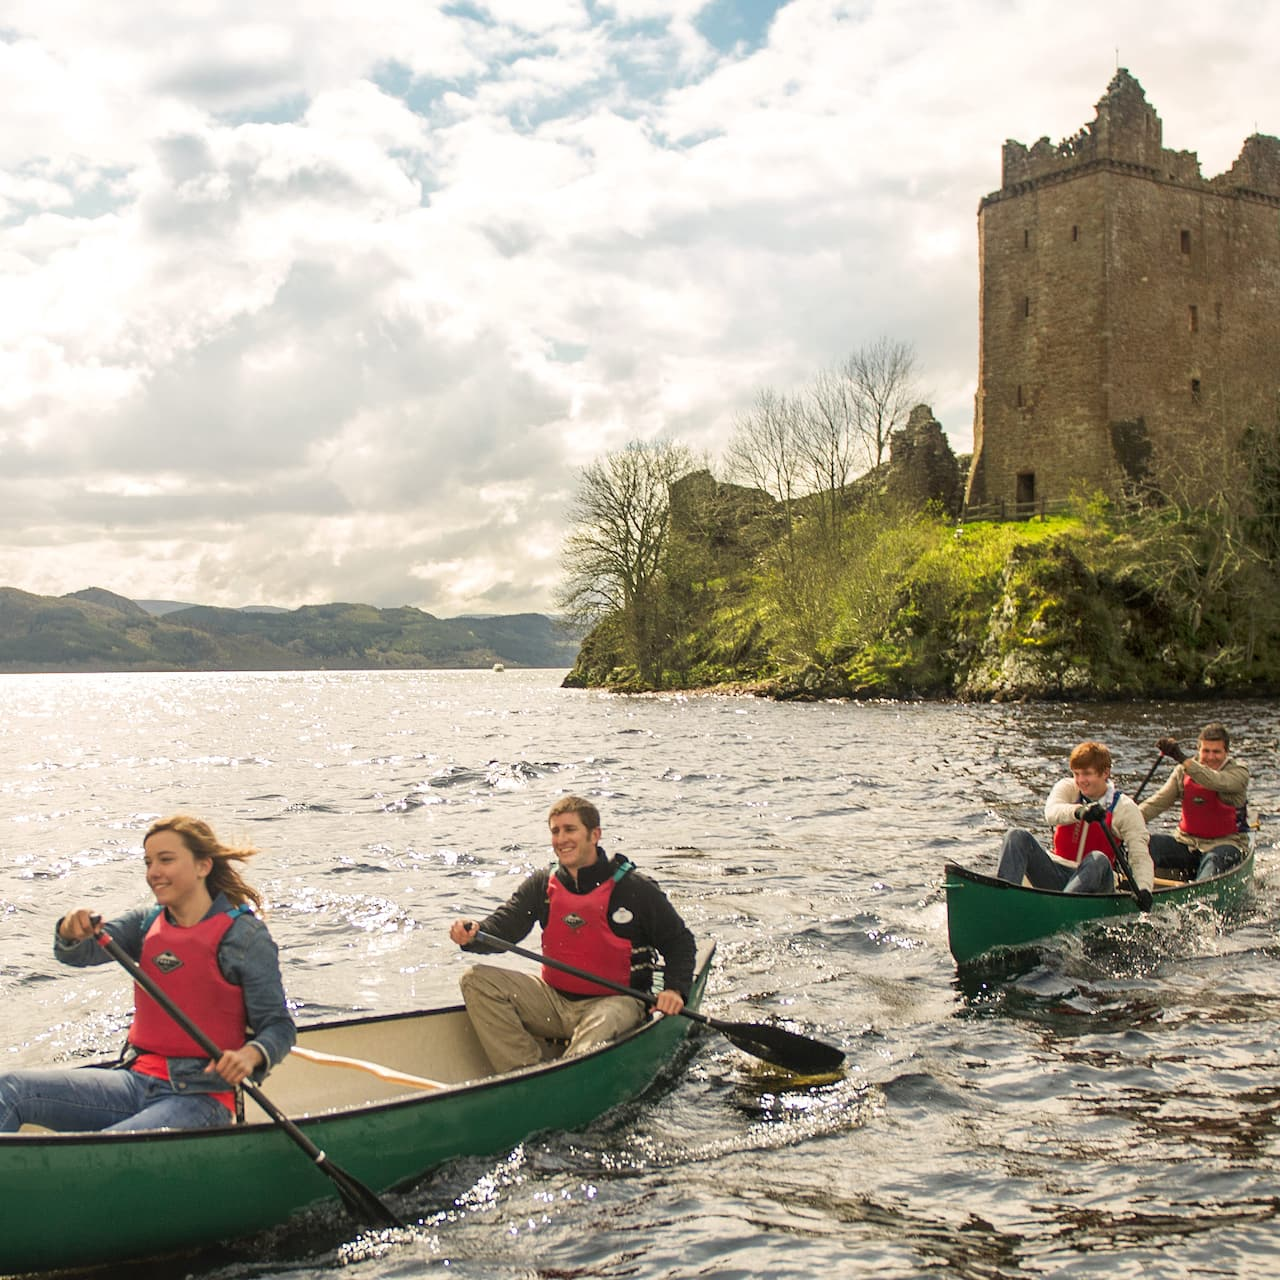 4 Adventurers paddle 2 canoes past Urquhart Castle on Loch Ness